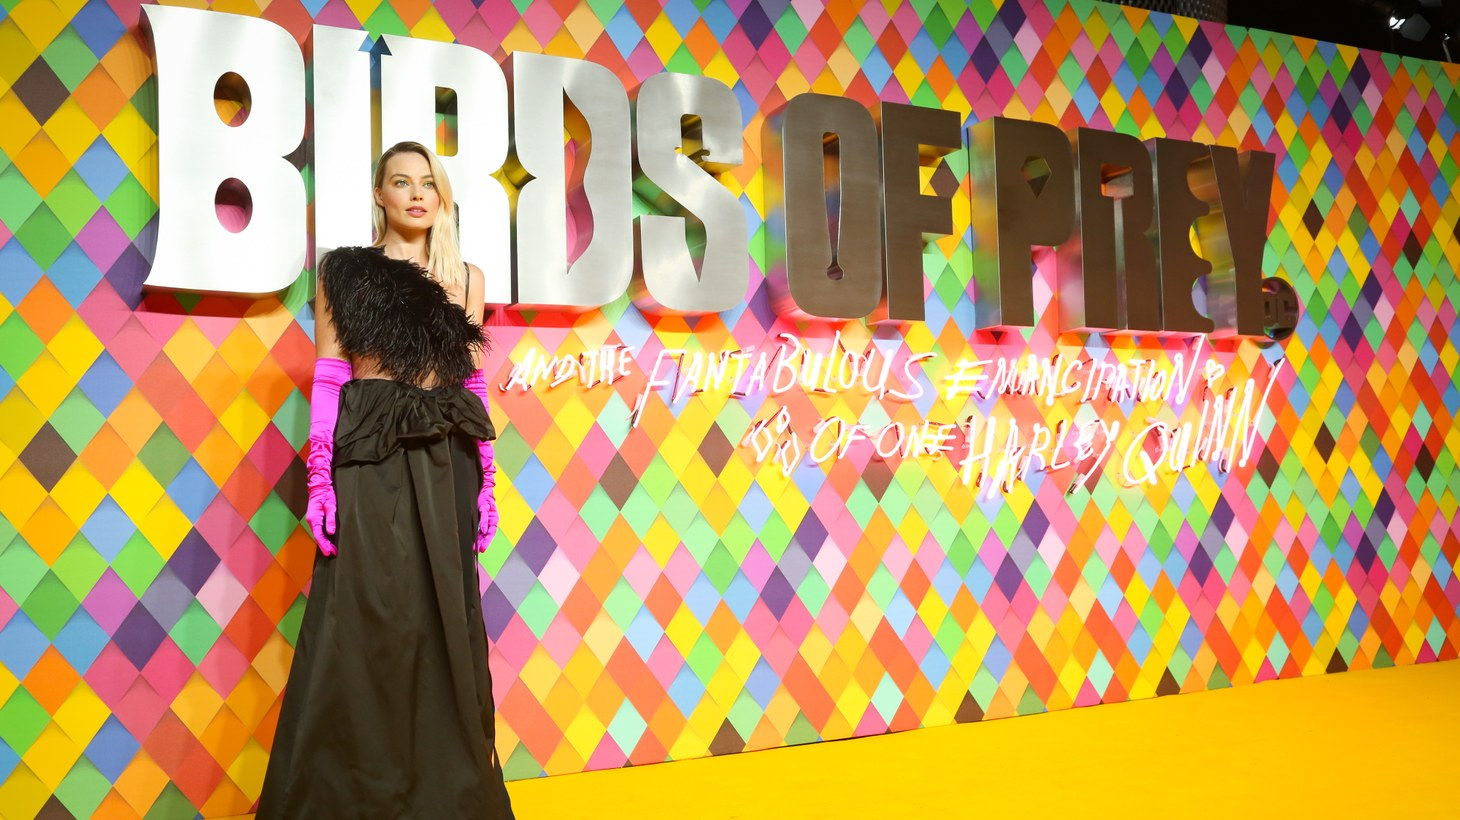 """Margot Robbie at the world premiere for """"Birds of Prey (and The Fantabulous Emancipation of One Harley Quinn)."""""""